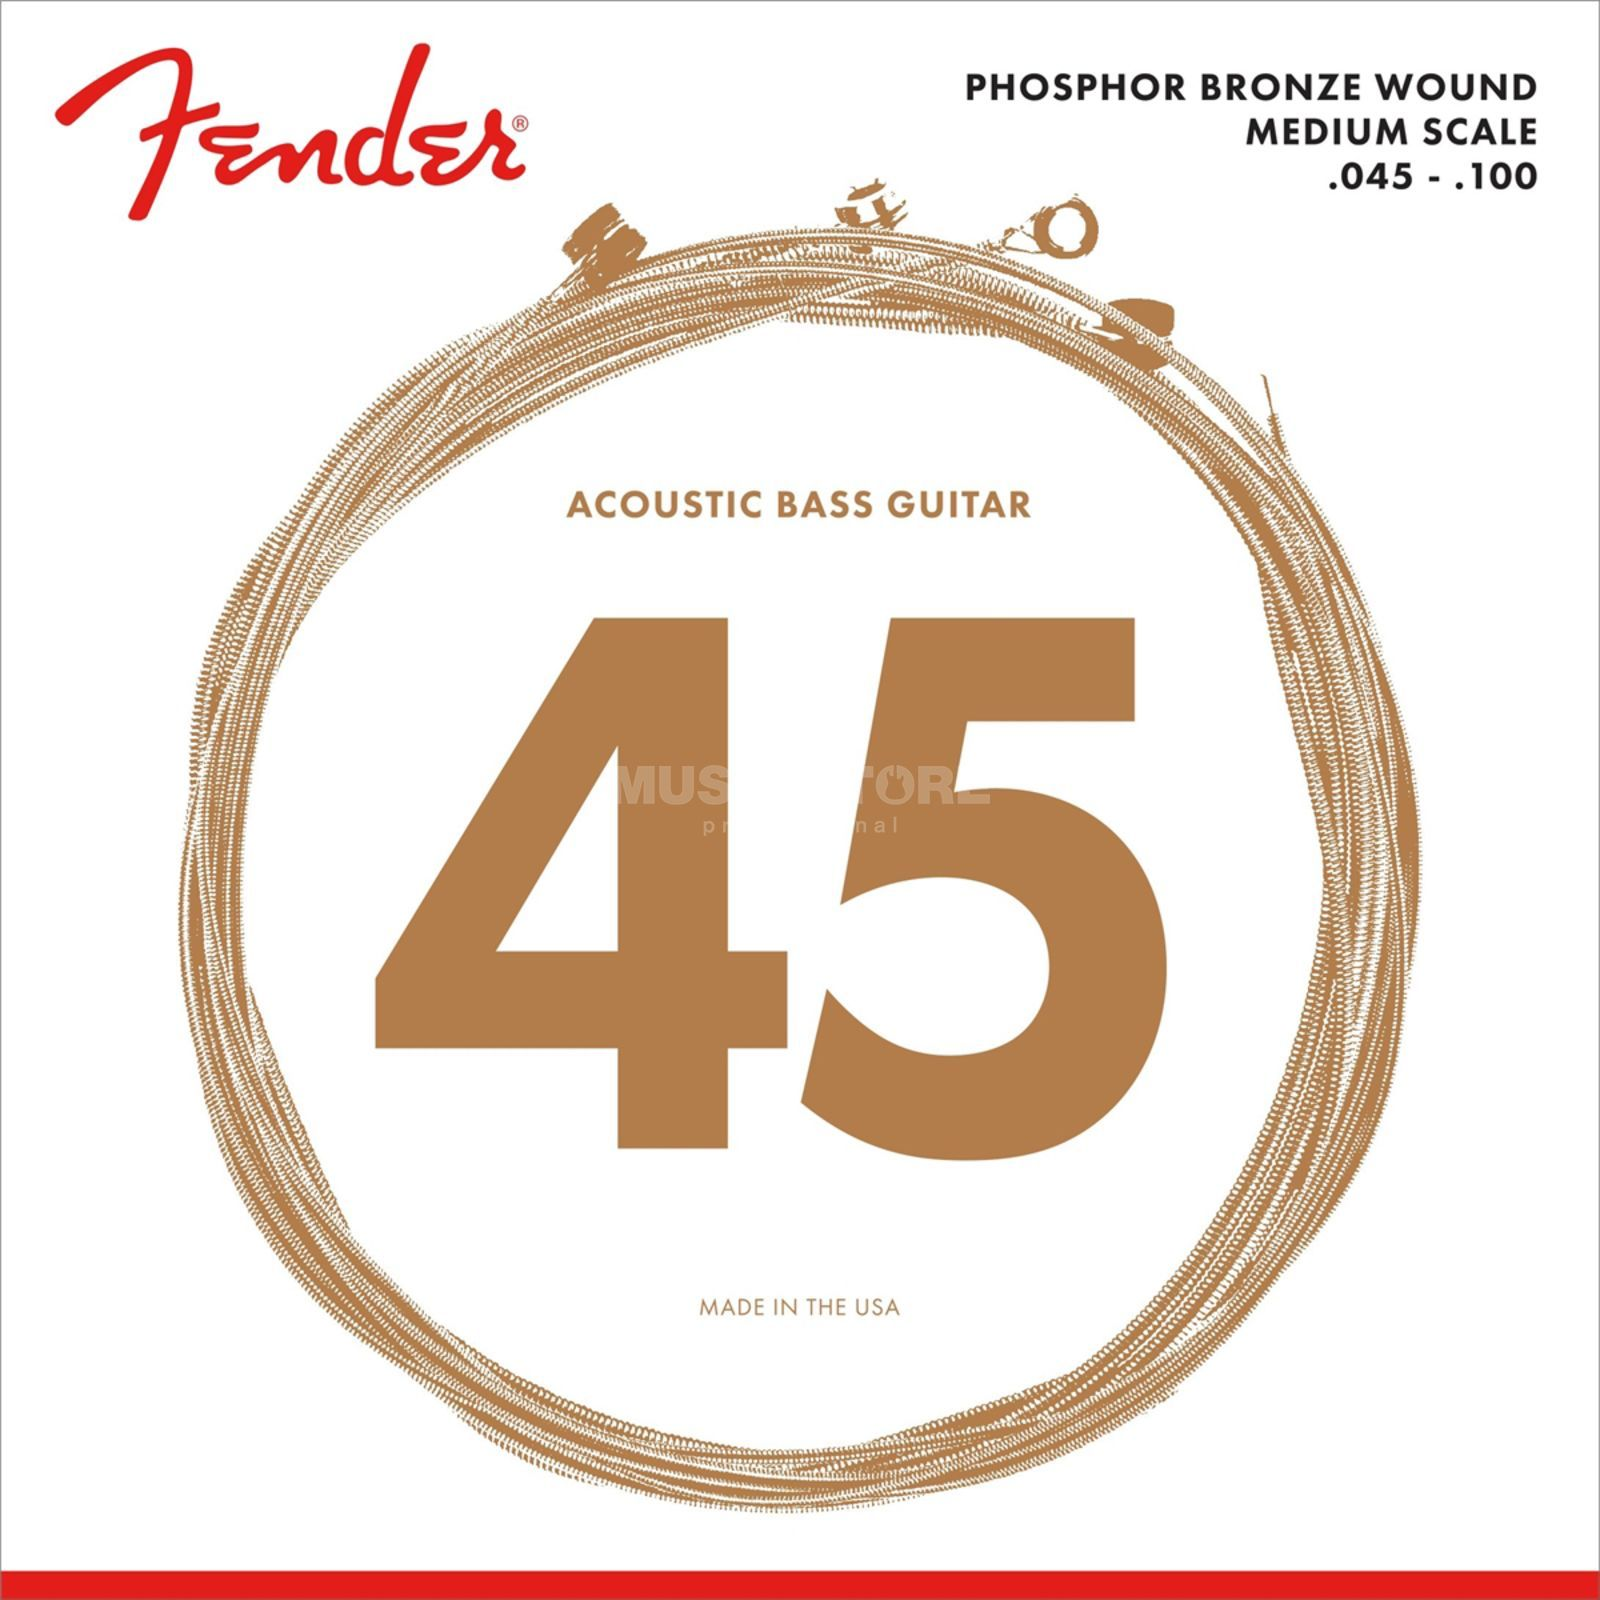 Fender 7060 Phosphor Bronze Acoustic Bass Strings Medium Scale 45-100 Produktbild